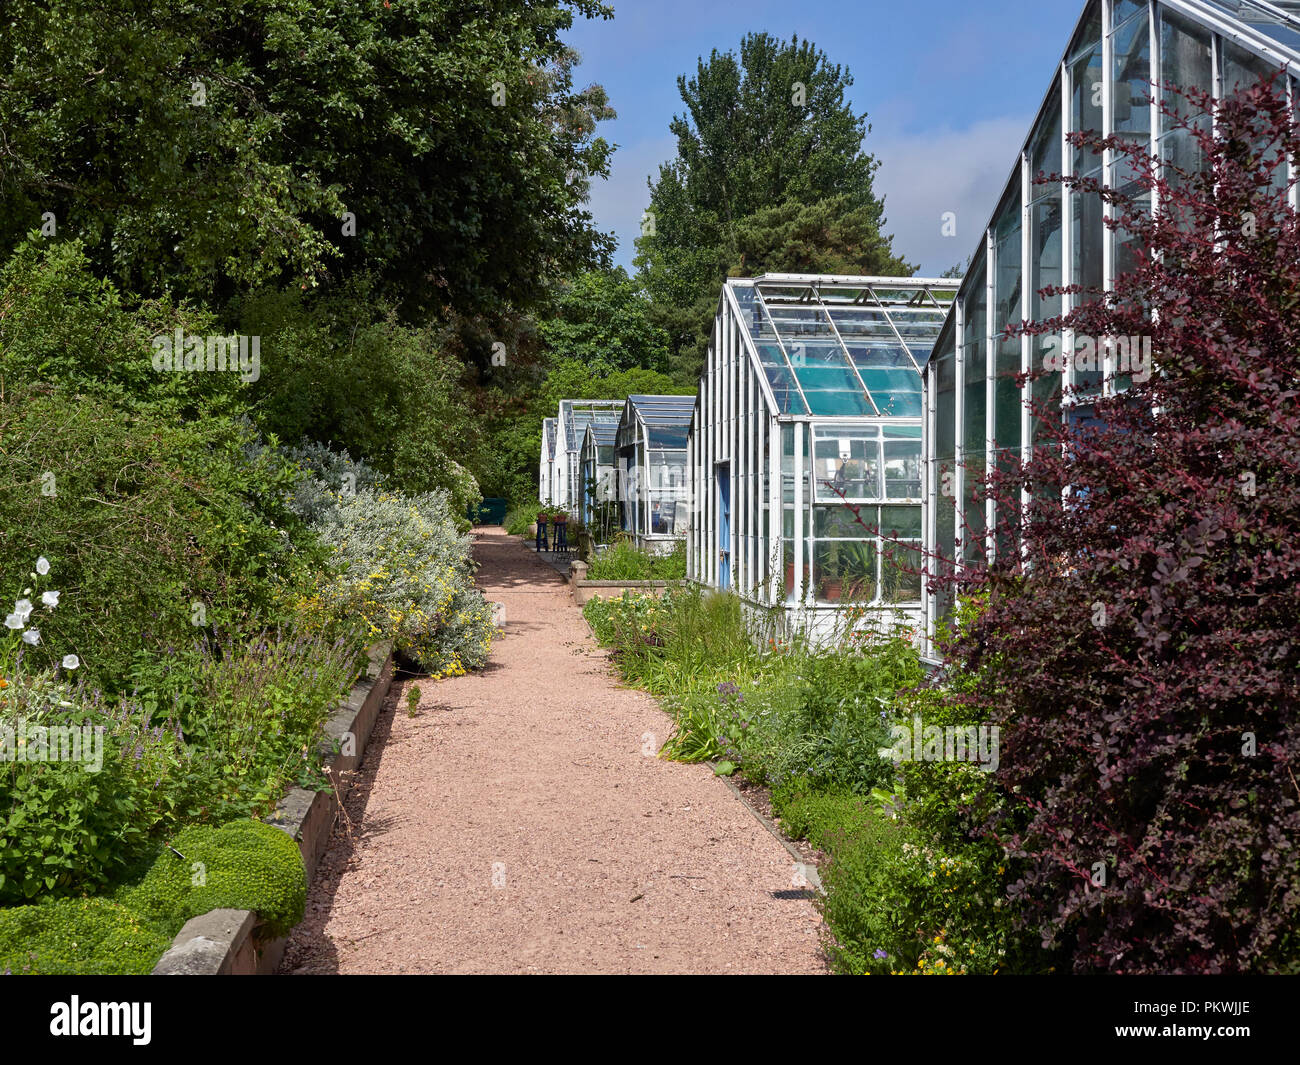 A row of Glasshouses next to a quiet Red Cinder Path within St Andrews Botanic Gardens in Fife, Scotland on one Summers Day. - Stock Image